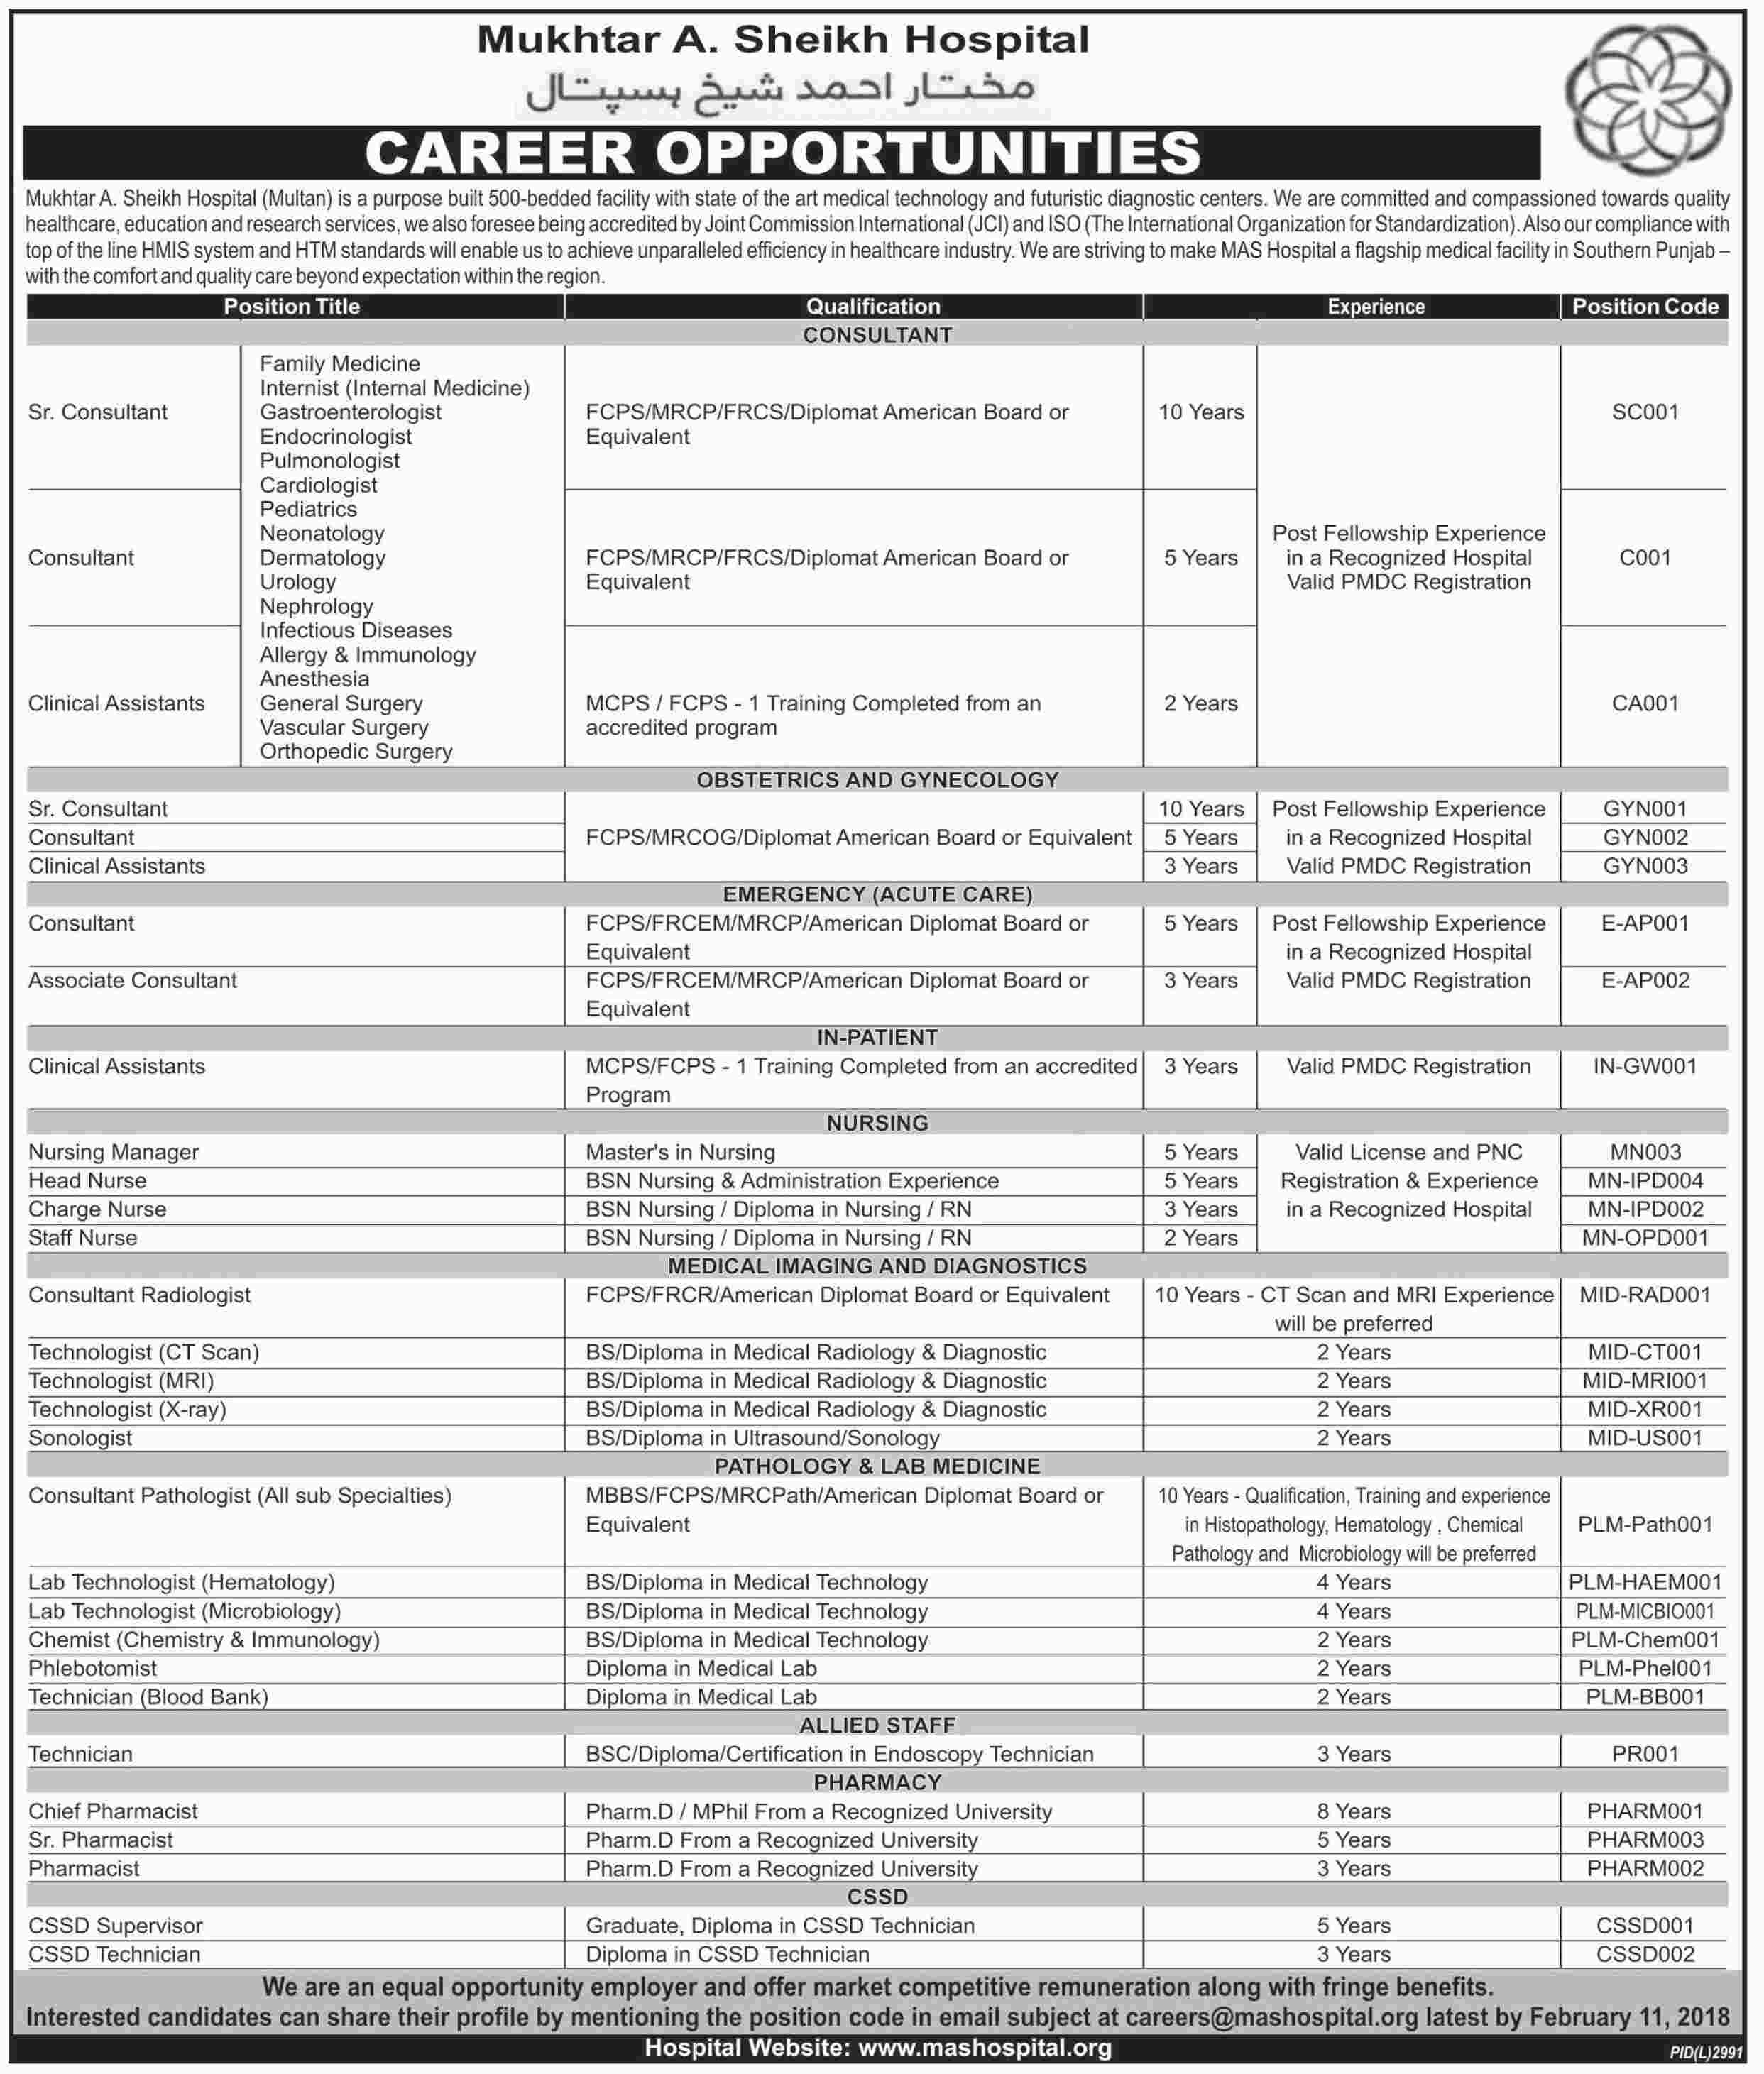 Jobs In Mukhtar Ahmed Sheikh Hospital 29 Jan 2018